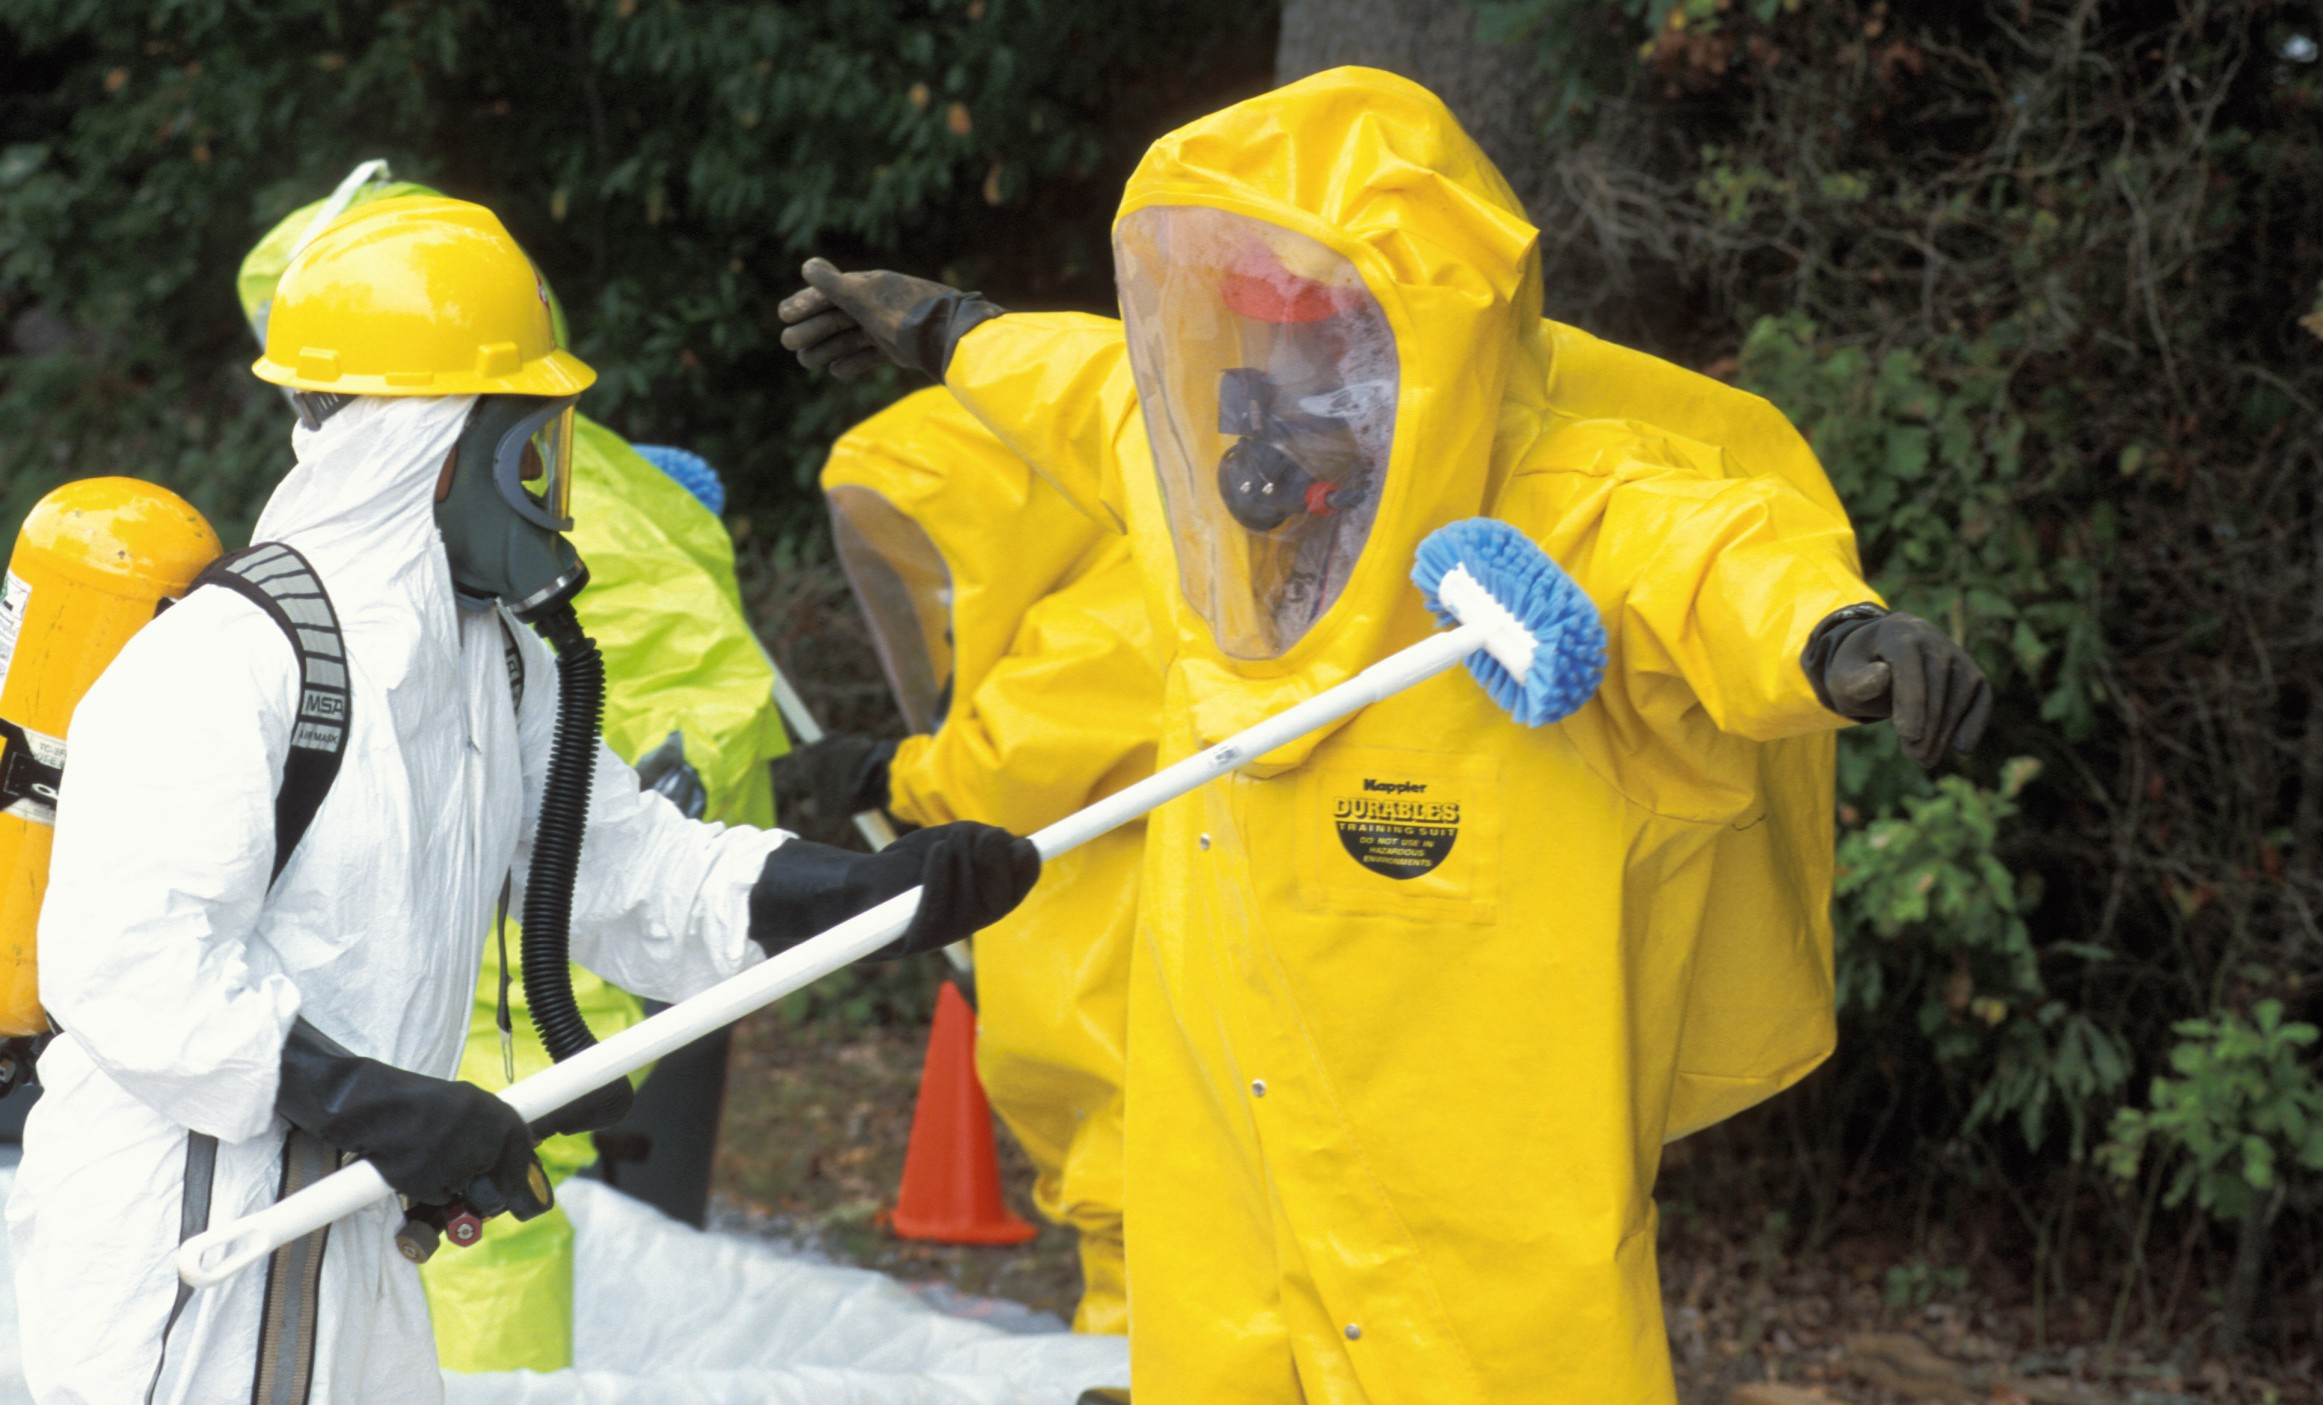 Hazardous waste decontamination of man wearing PPE